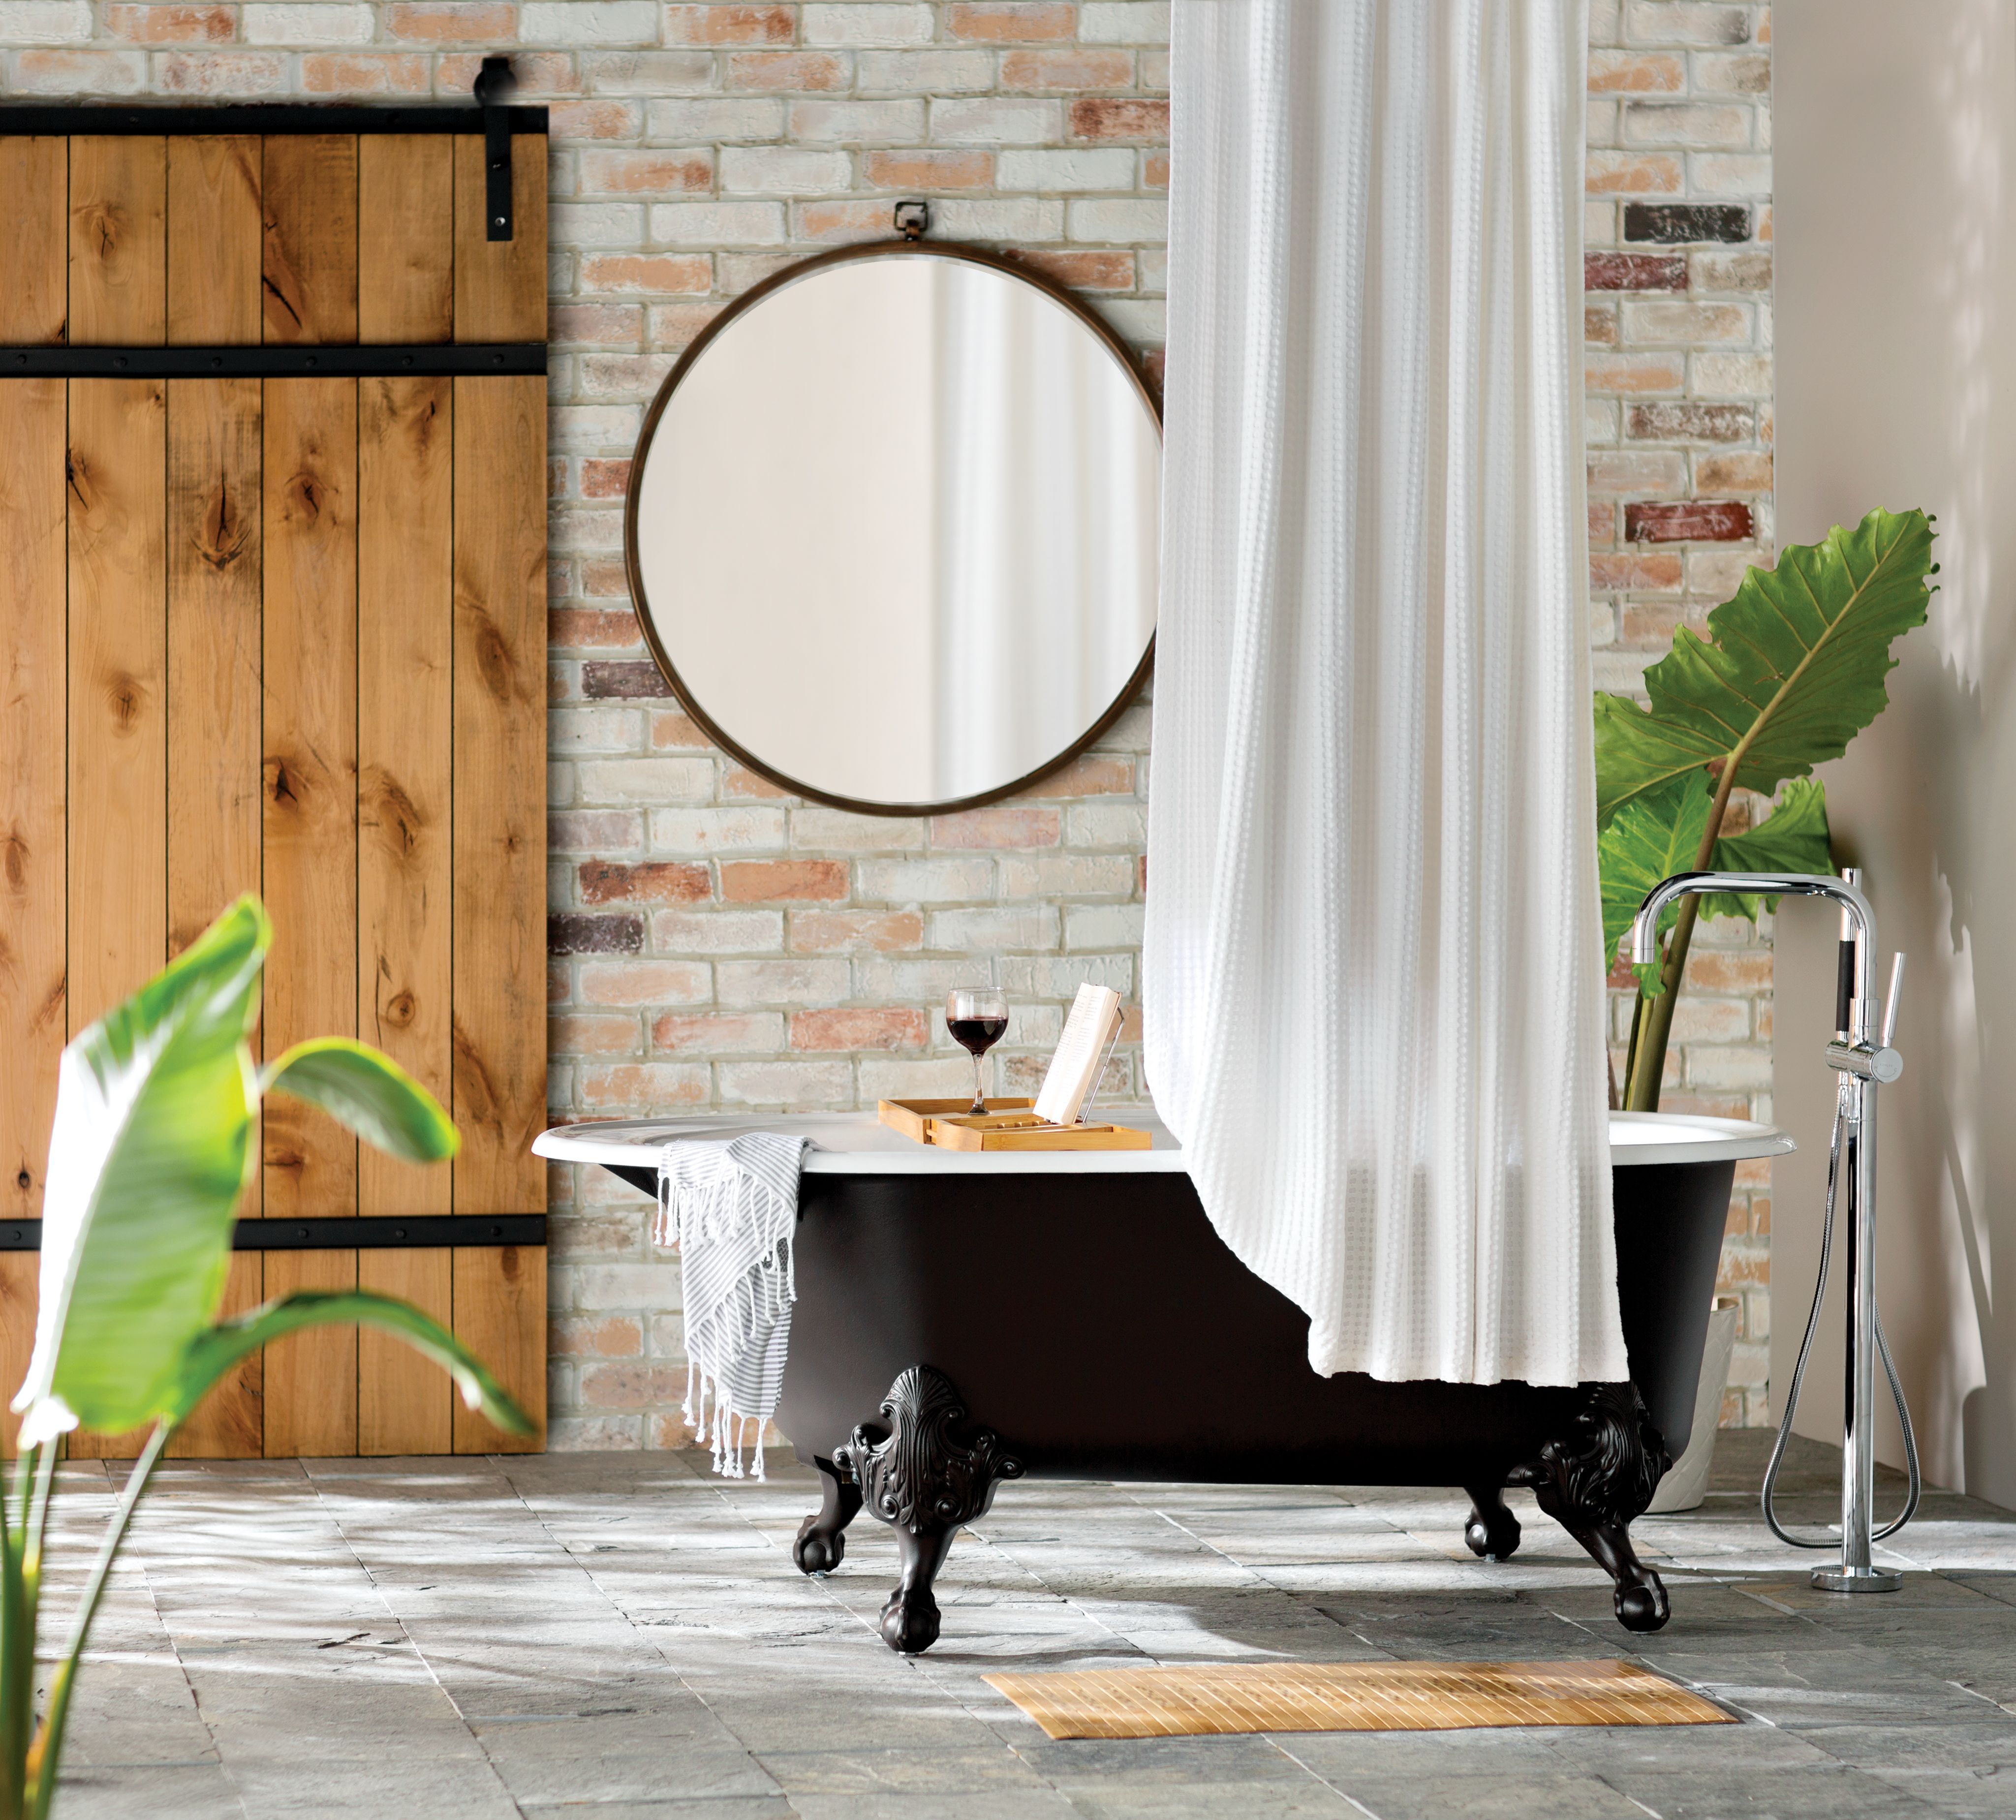 8 Bathroom Mirror Ideas You Might Not Have Thought Of | Industrial ...